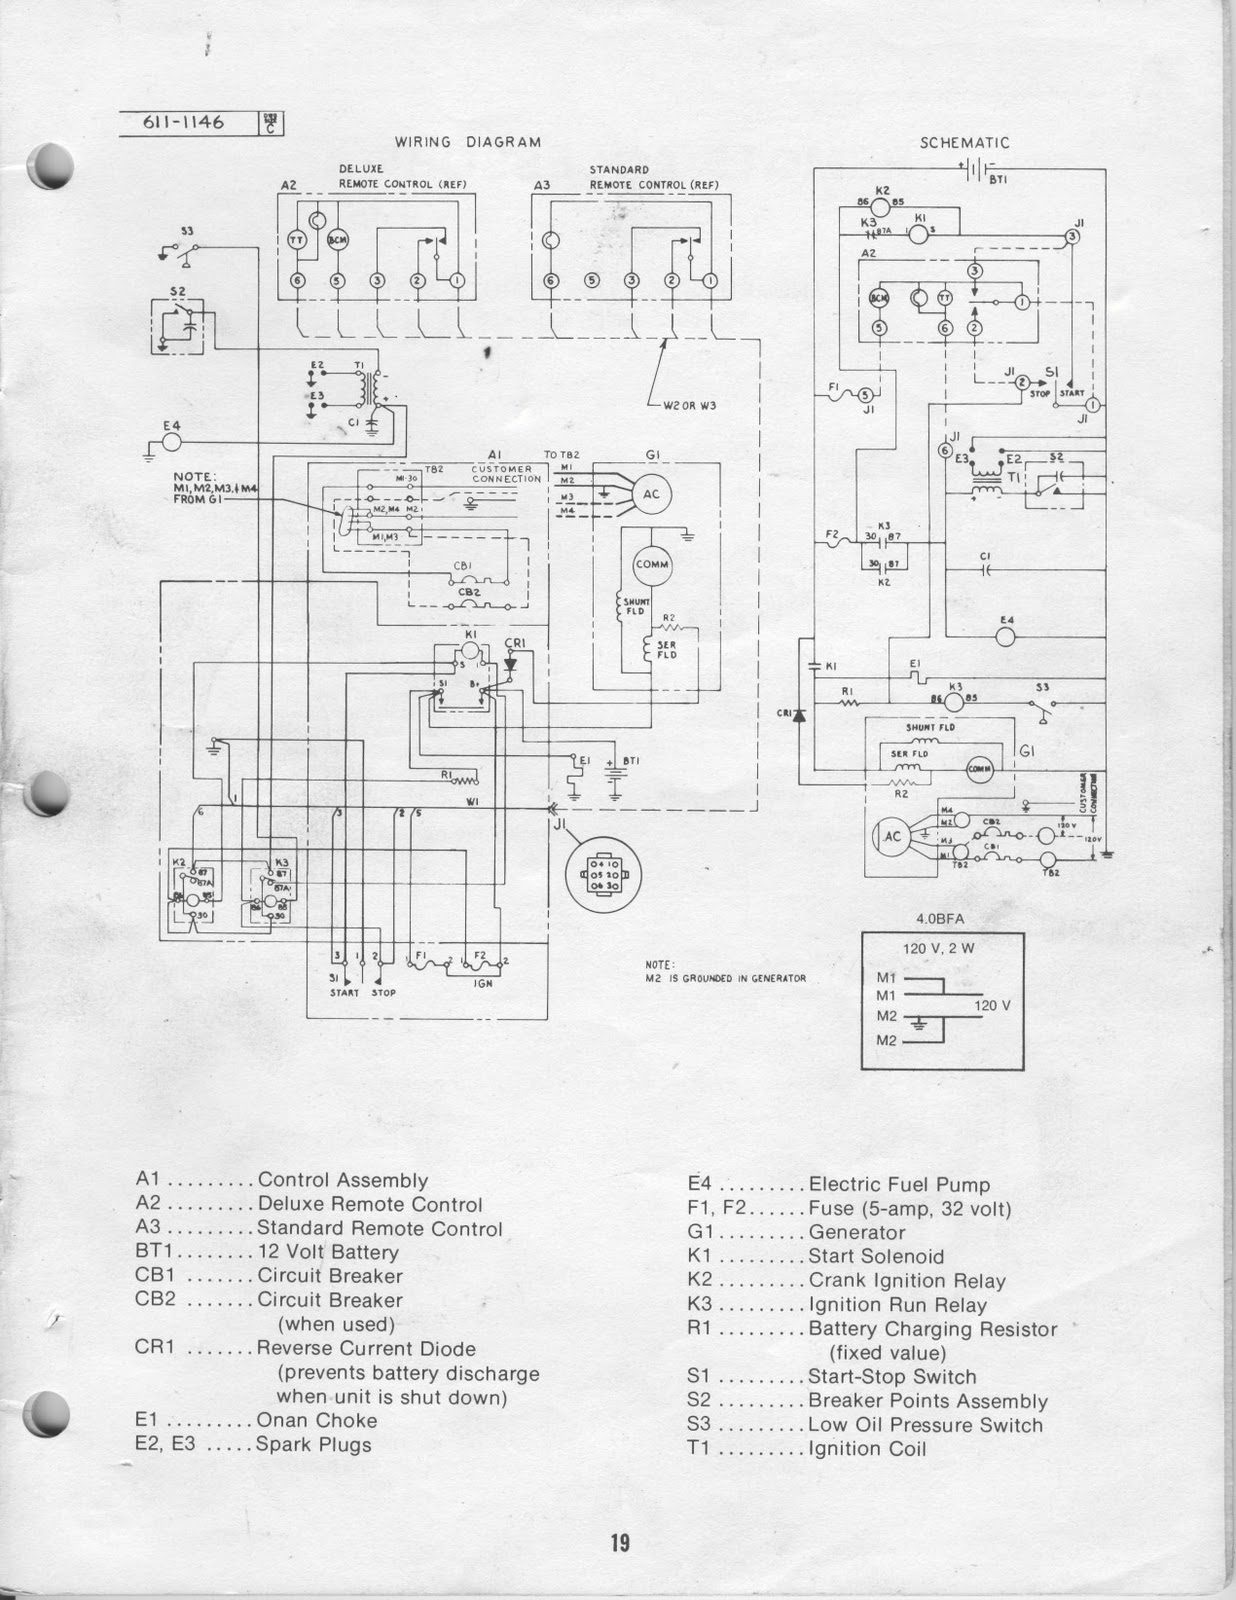 [DIAGRAM] P216 Onan Wiring Diagram FULL Version HD Quality